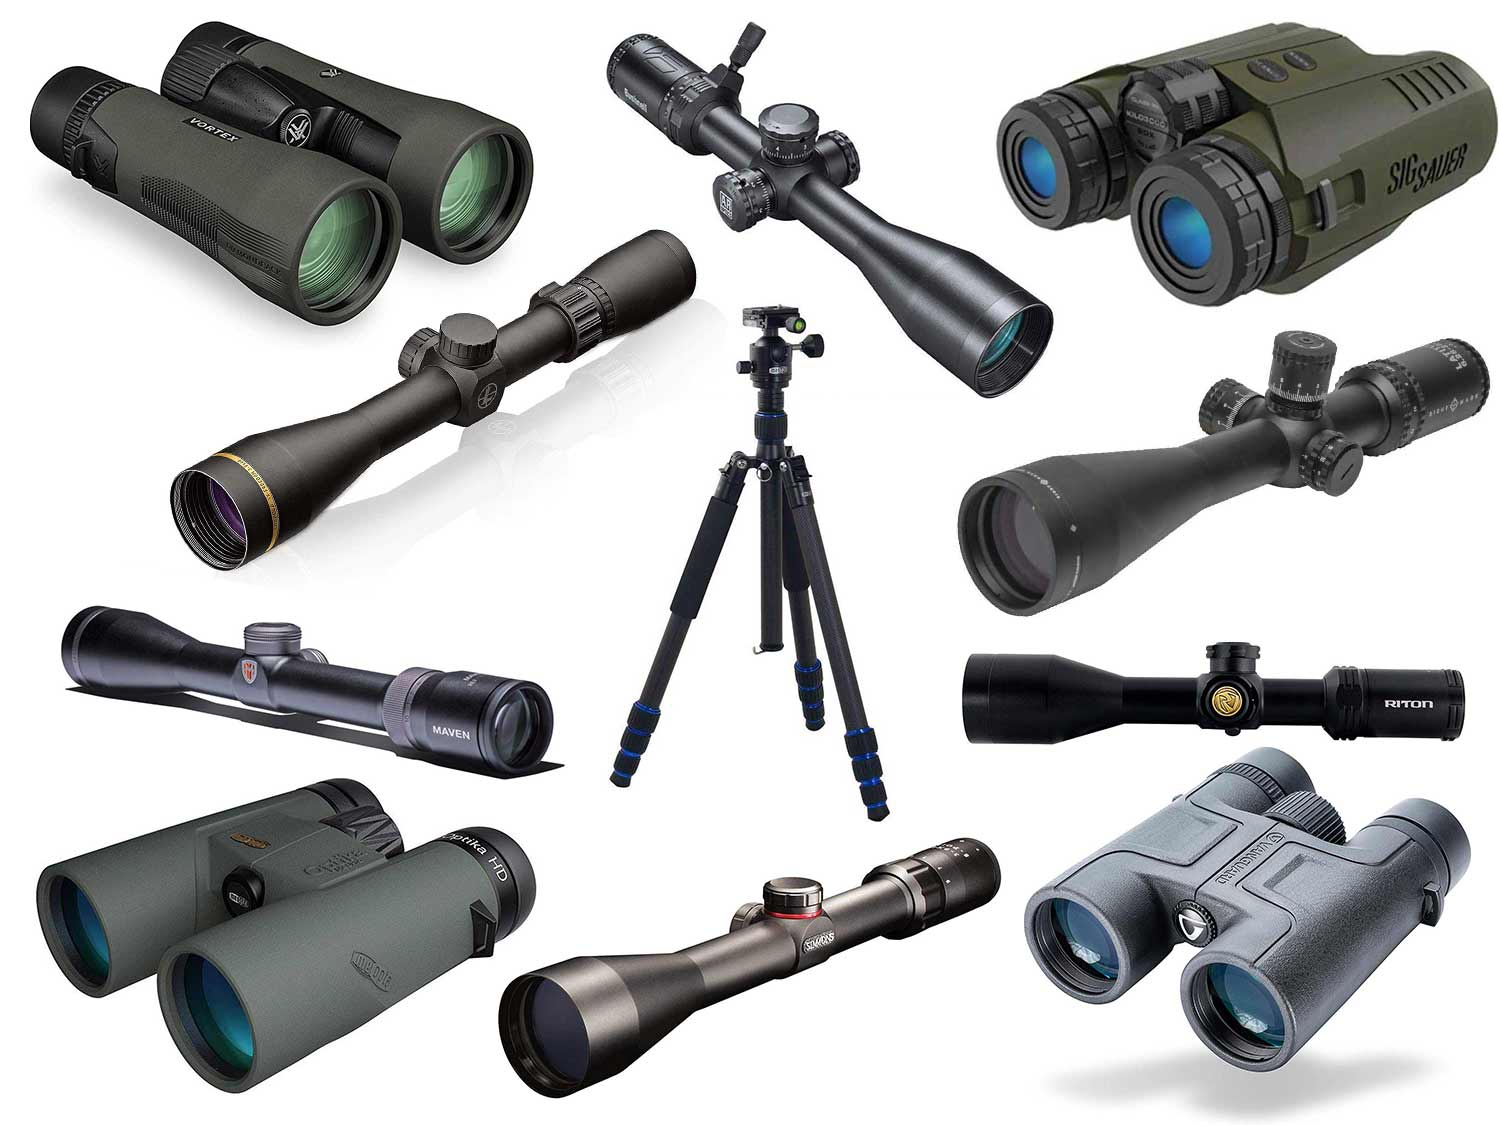 The Best Quality Optics To Buy When You're On a Budget